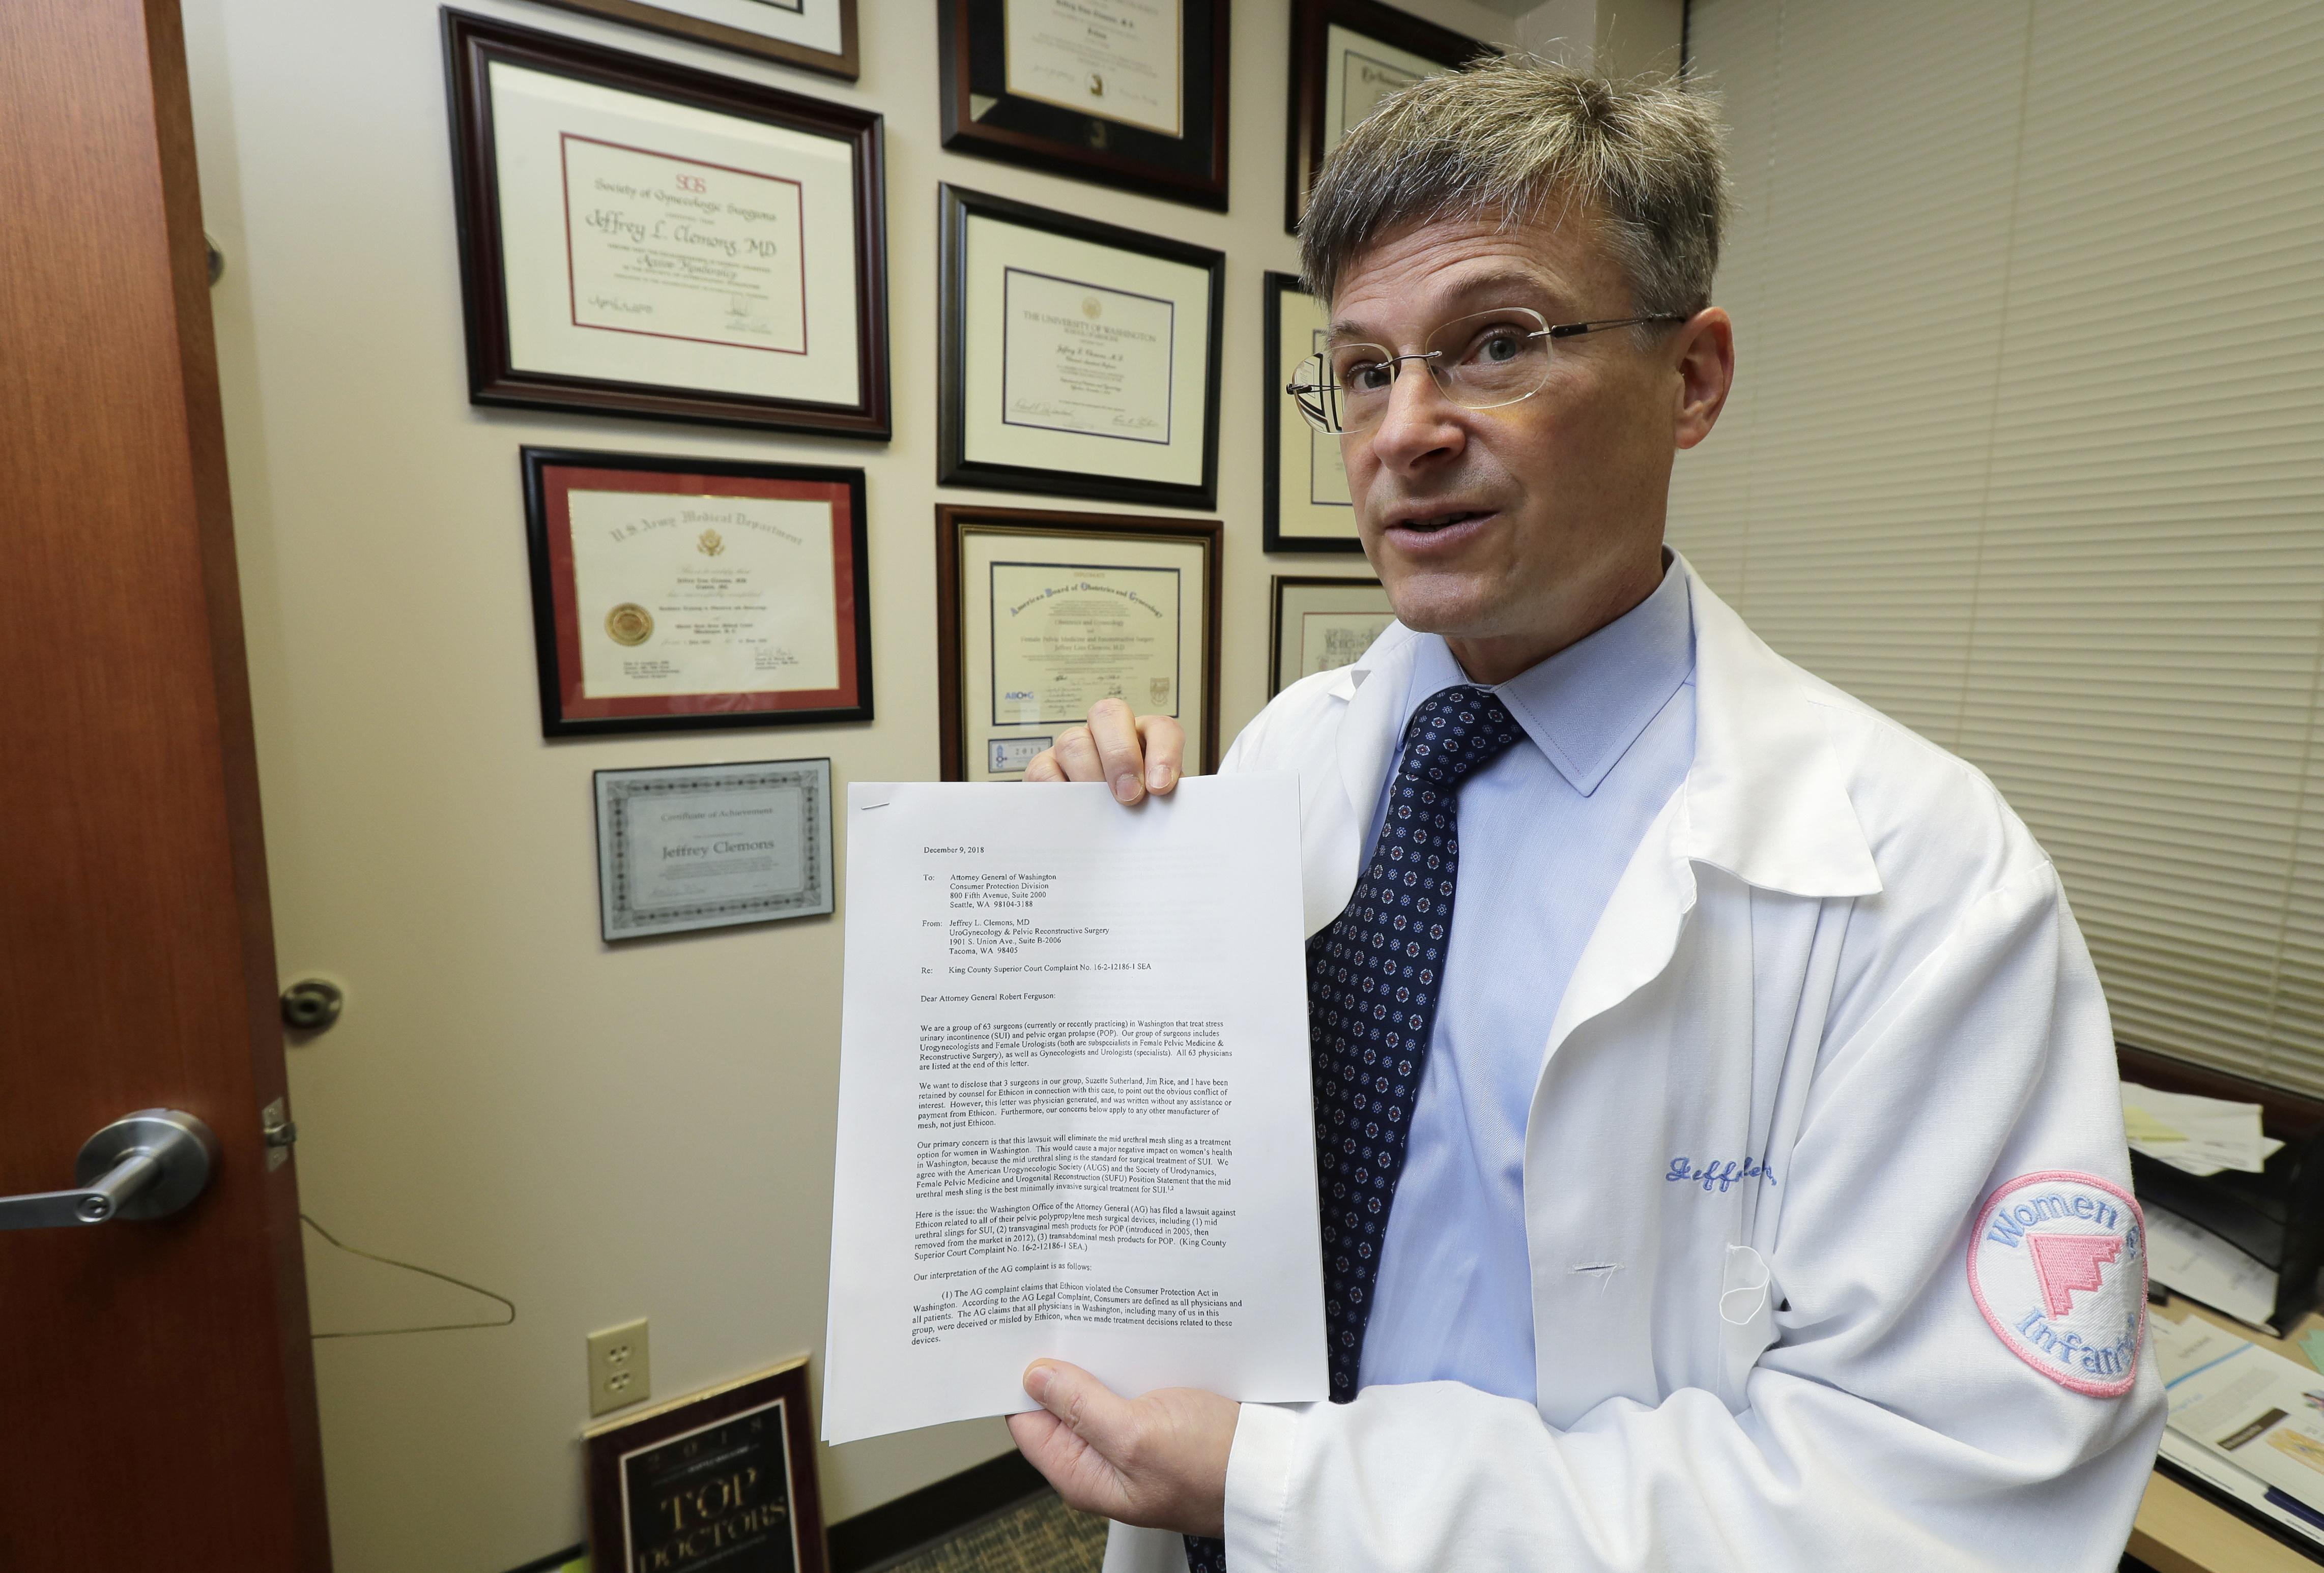 Physicians criticize state lawsuits over pelvic mesh | The Spokesman